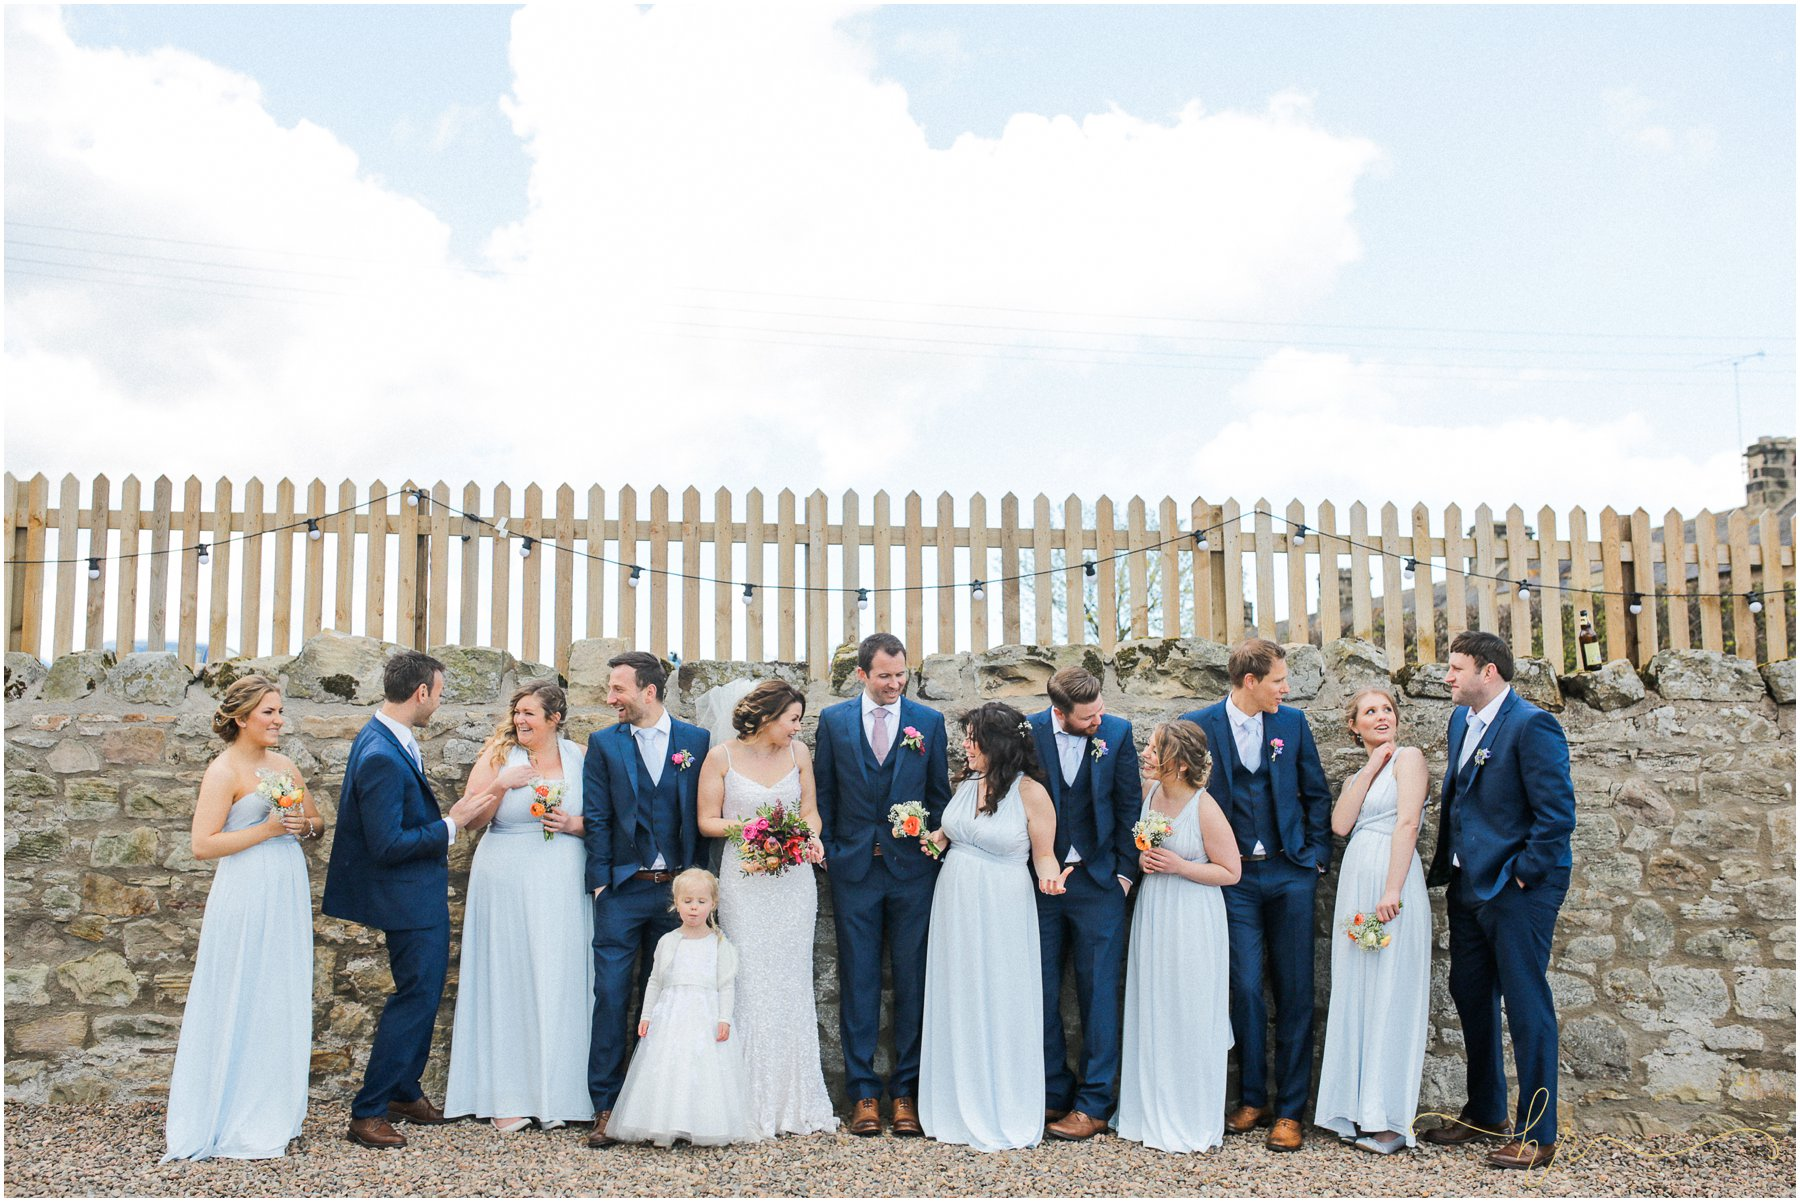 Doxford-Barn-Wedding-Photography_0225